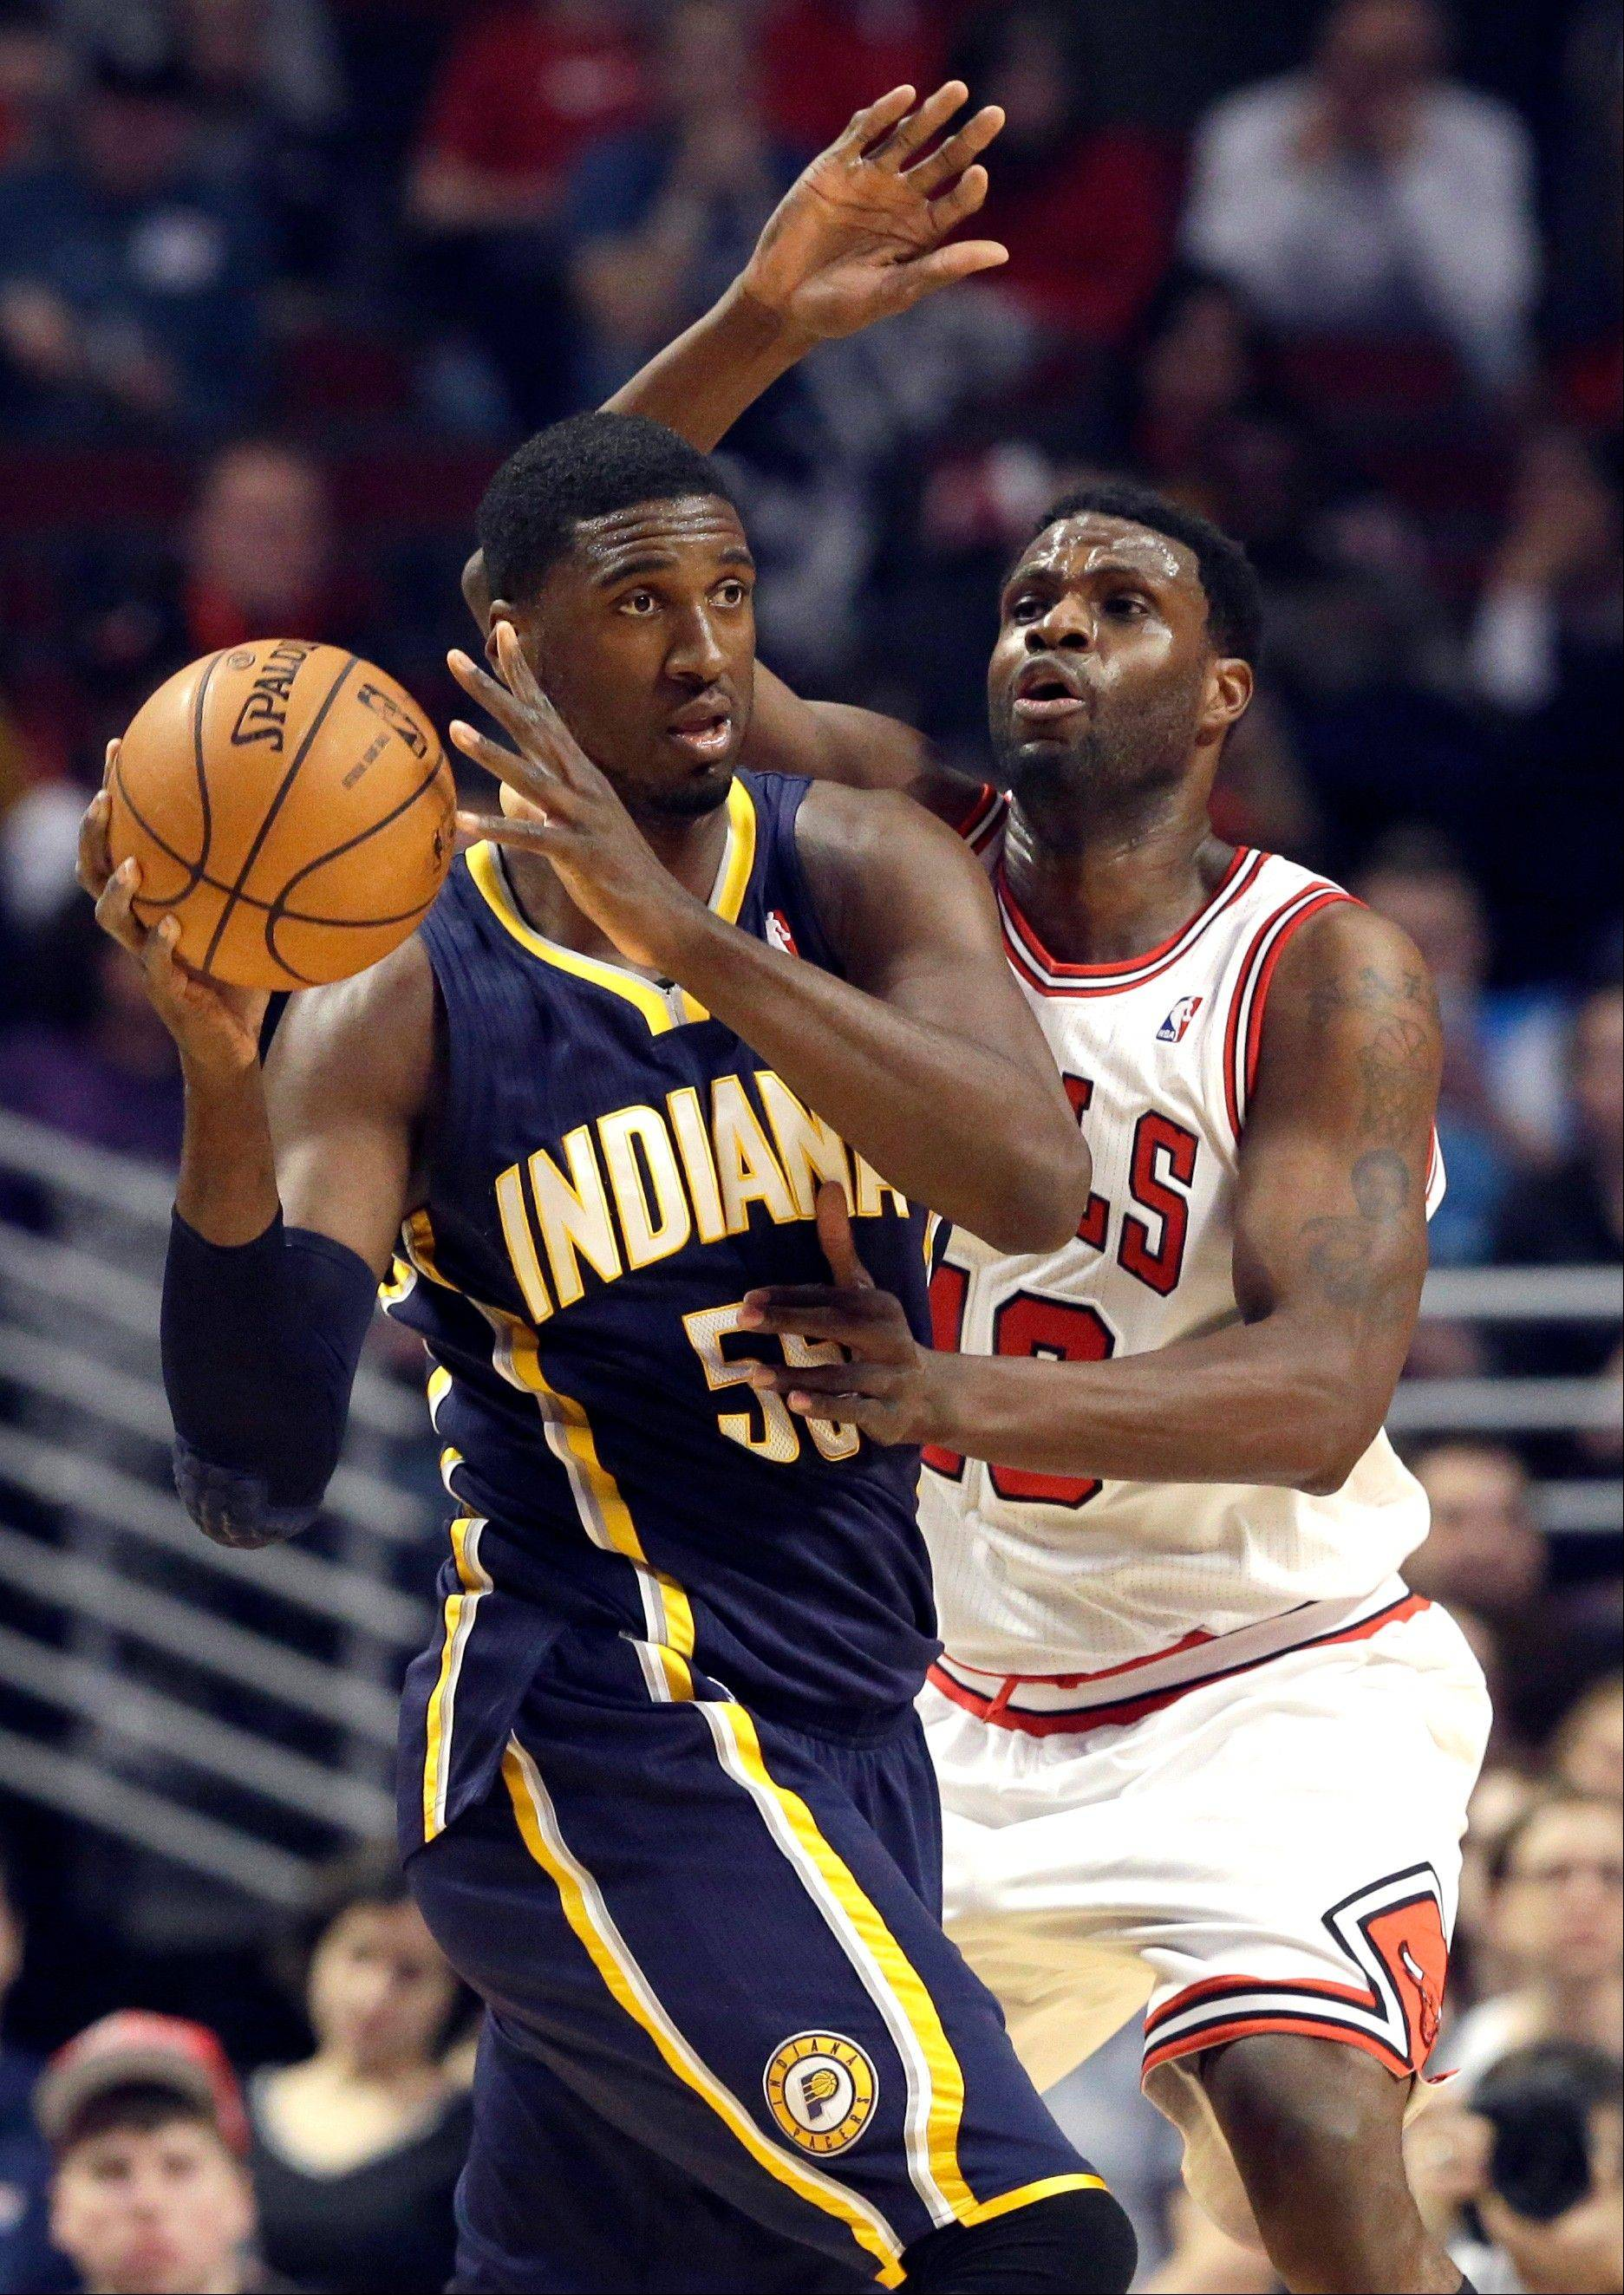 Bulls center Nazr Mohammed plays some tight defense on the Pacers� Roy Hibbert on Saturday night at the United Center.